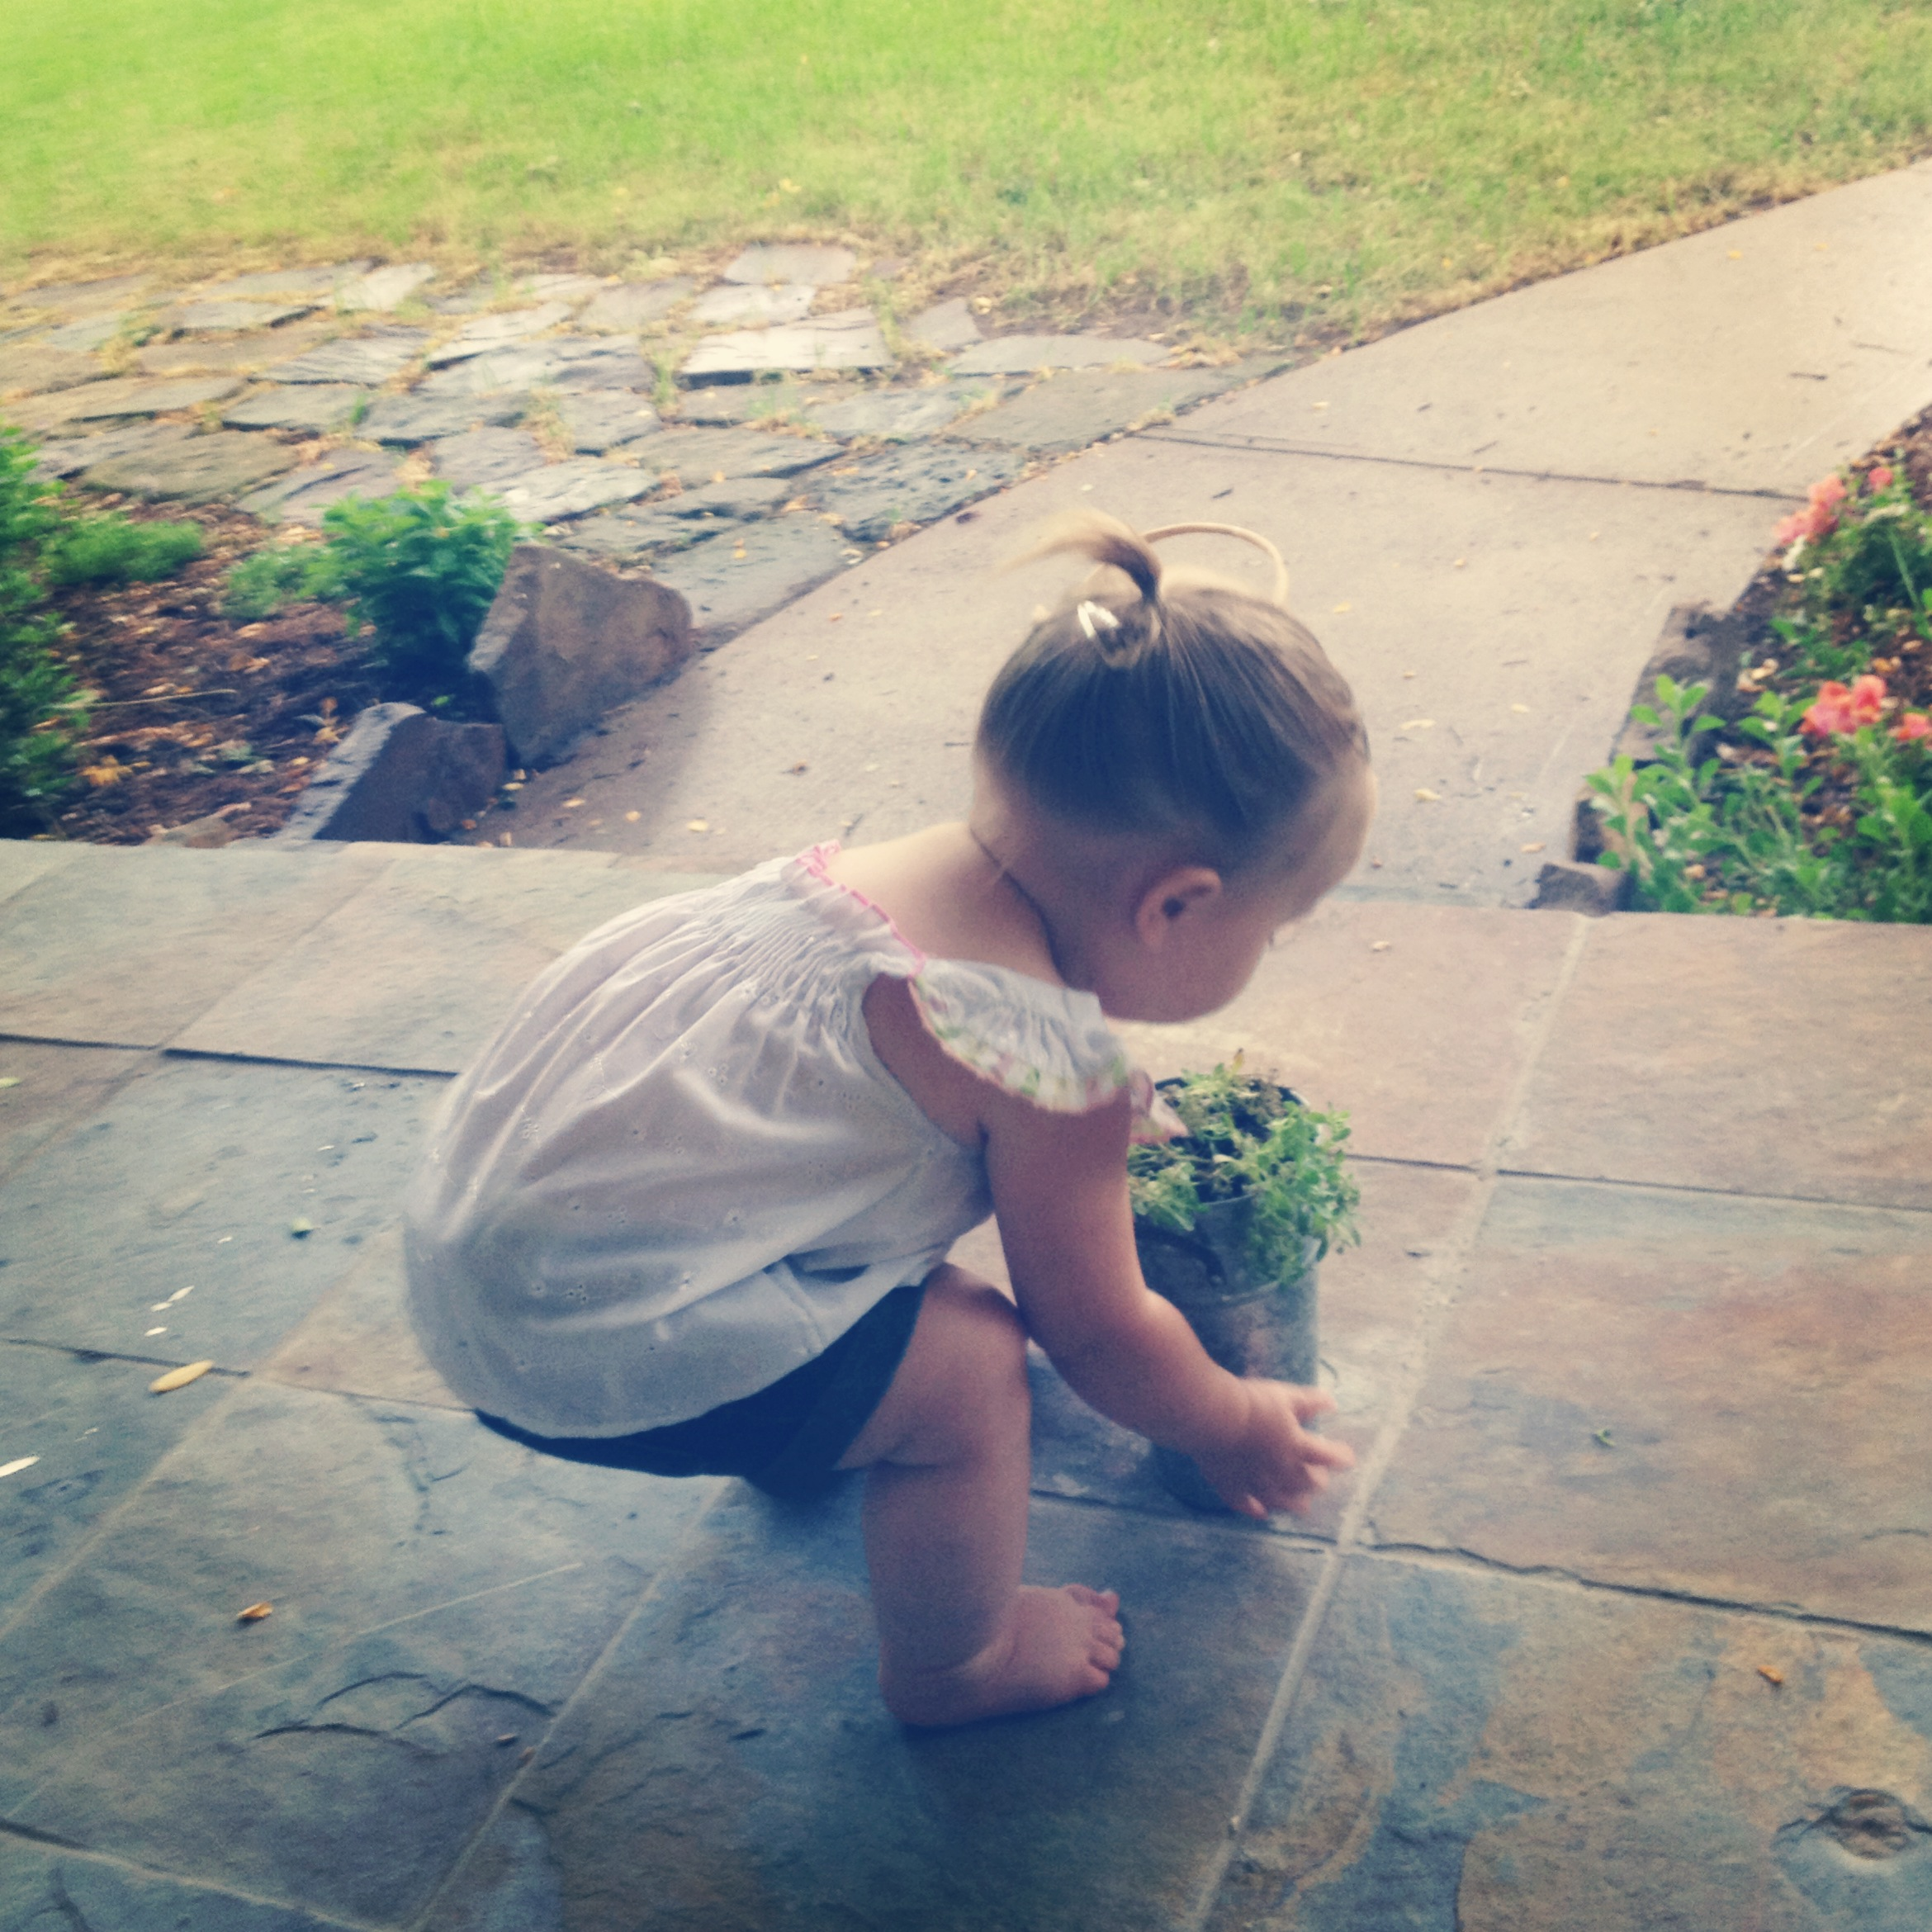 Tending to her plants.